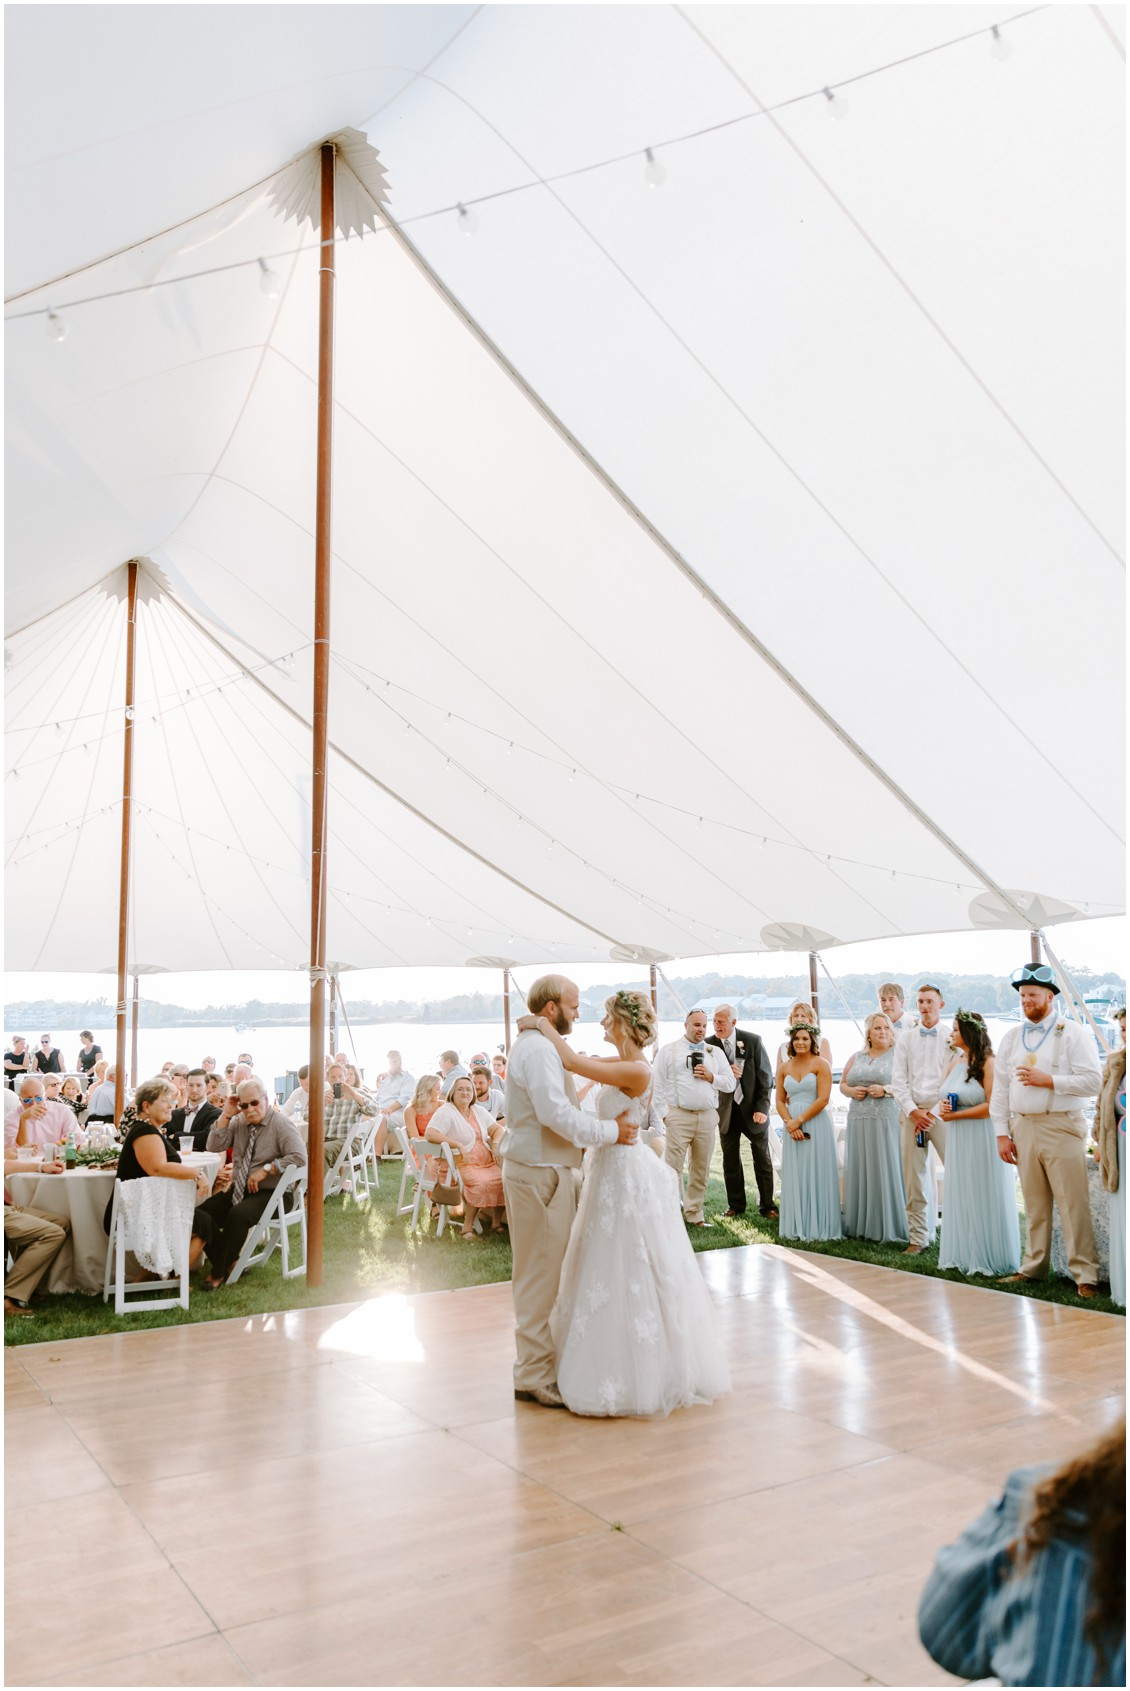 Bride and groom first dance in tent | My Eastern Shore Wedding | Sherwood Florist | Eastern Shore Tents and Events